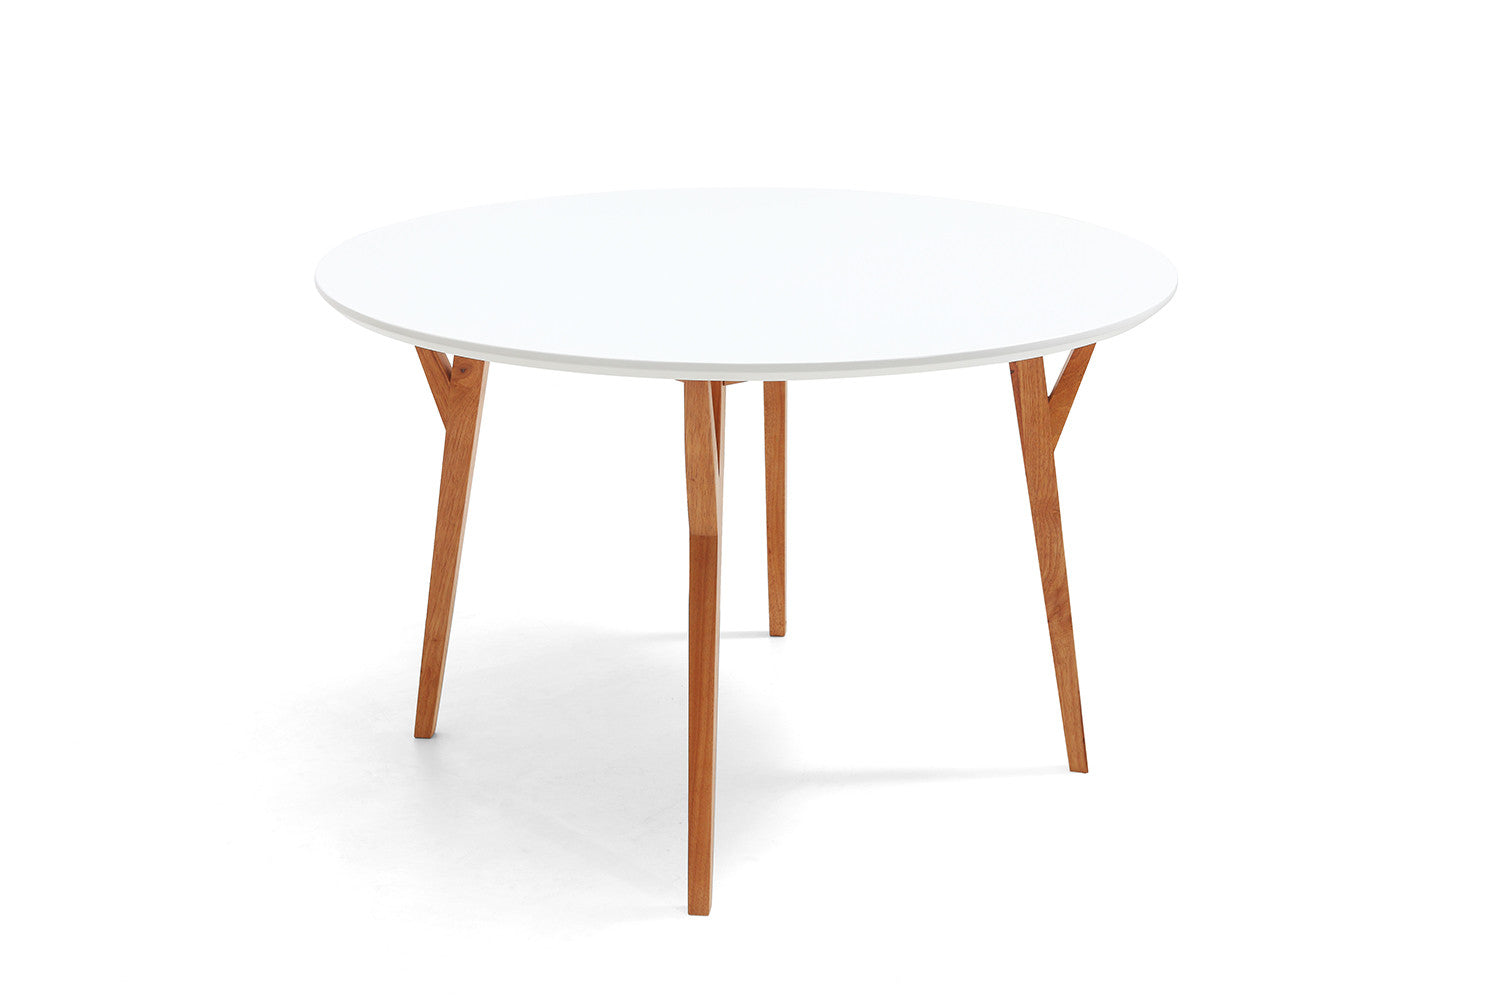 Table de salle manger ronde design scandinave moesa - Table ronde a manger ...